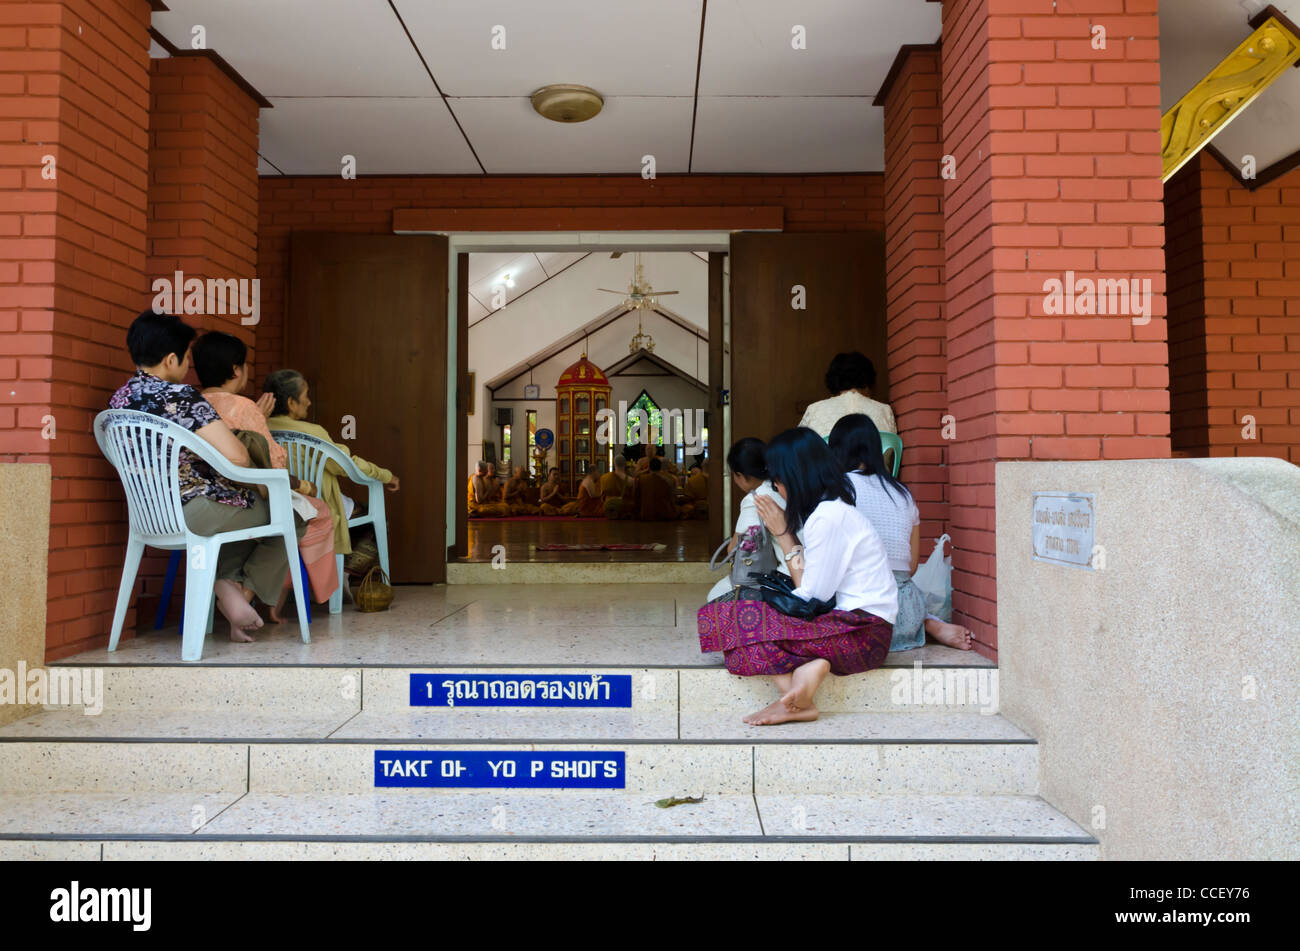 Relatives watch Buddhist monk initiation ceremony from porch of building at Wat U Mong temple in Chiang Mai Thailand - Stock Image